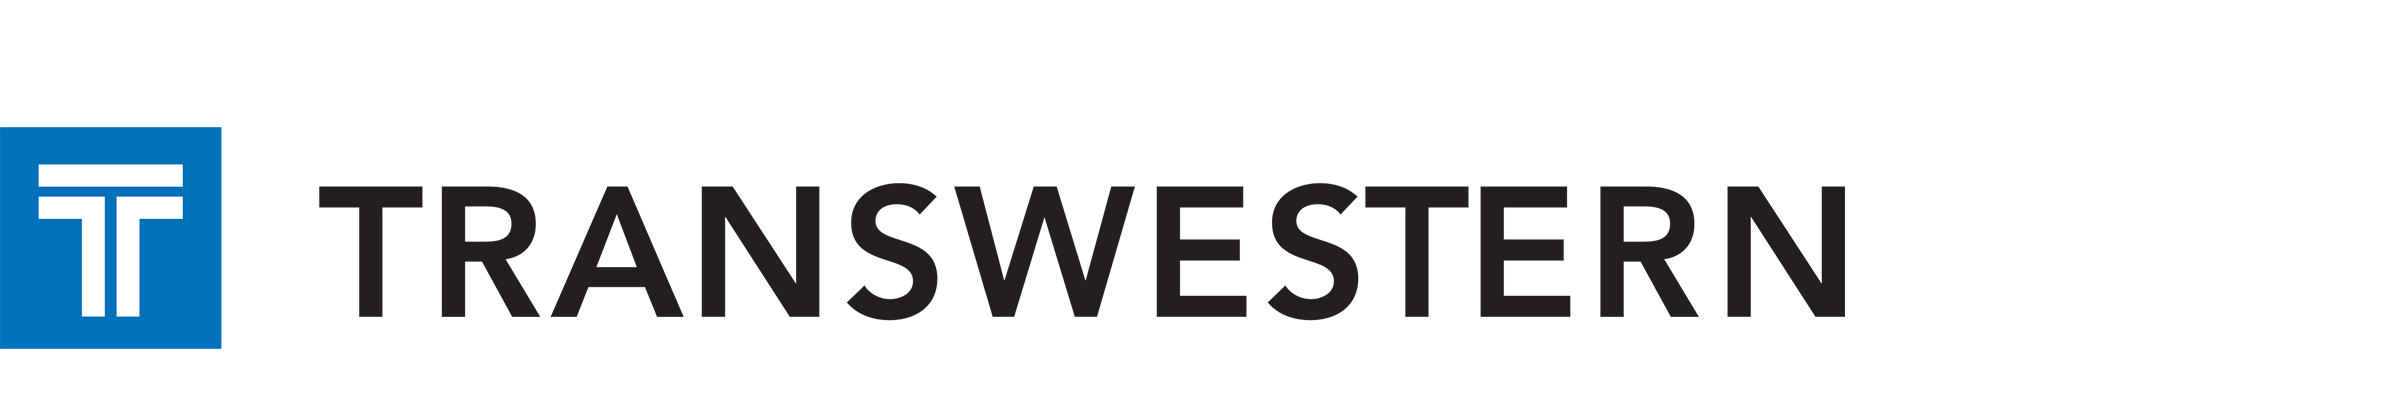 TranswesternLogo.png